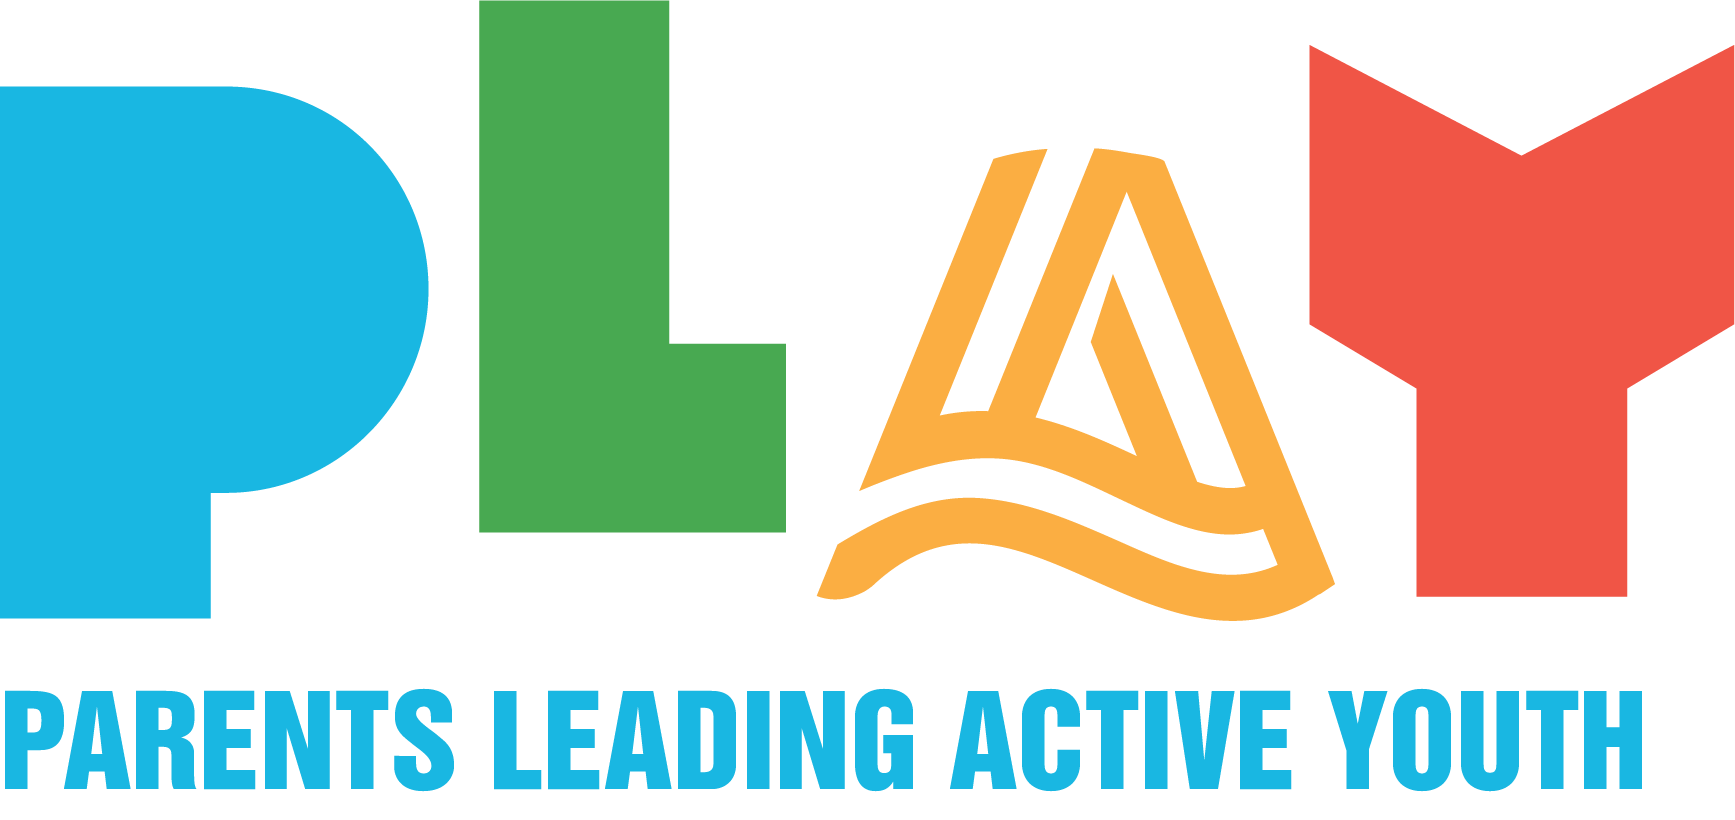 PLAY - Parents Leading Active Youth